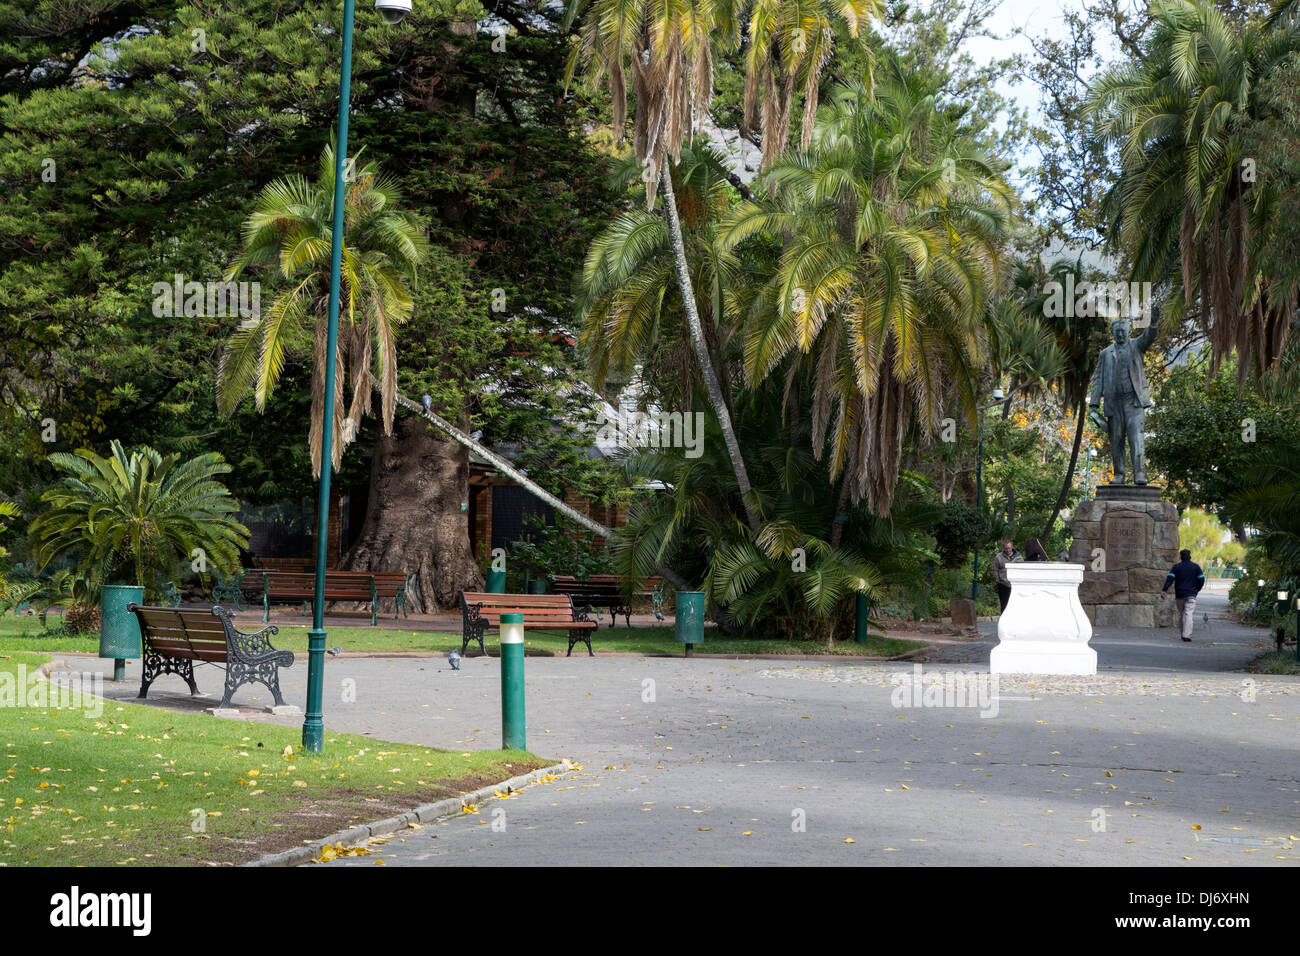 South Africa, Cape Town. Statue to Cecil Rhodes, in The Company's Garden, established by the Dutch East India Company in 1652. - Stock Image